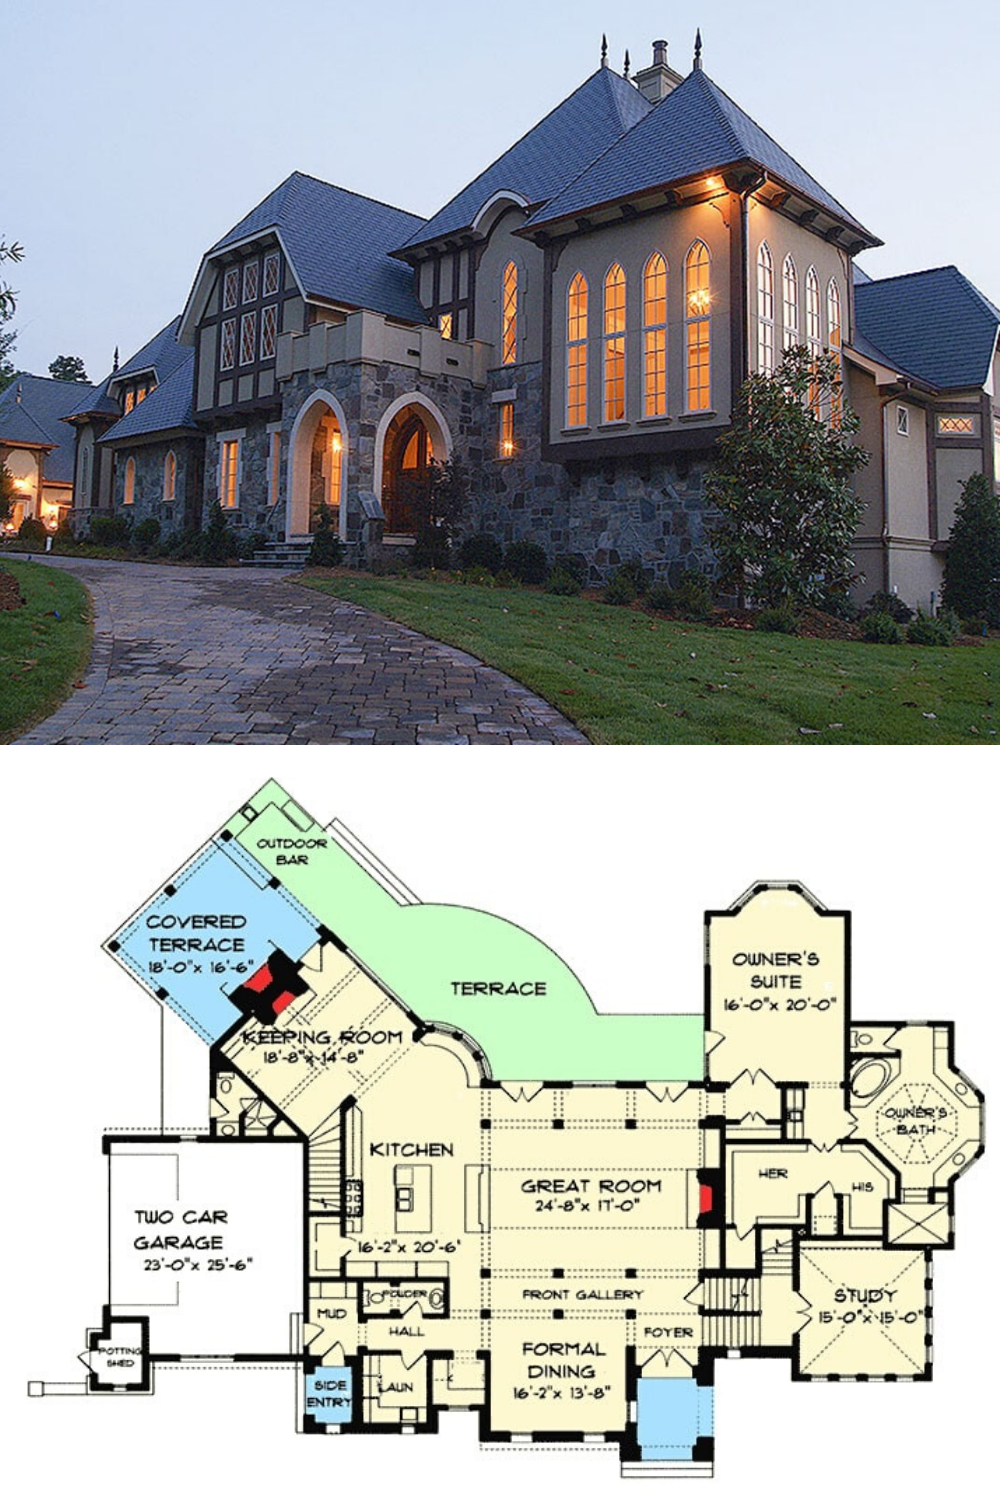 Two Story 5 Bedroom Luxury Tudor Home With First Floor Primary Suite Floor Plan House Plans Mansion Mansion Floor Plan Mansion Plans